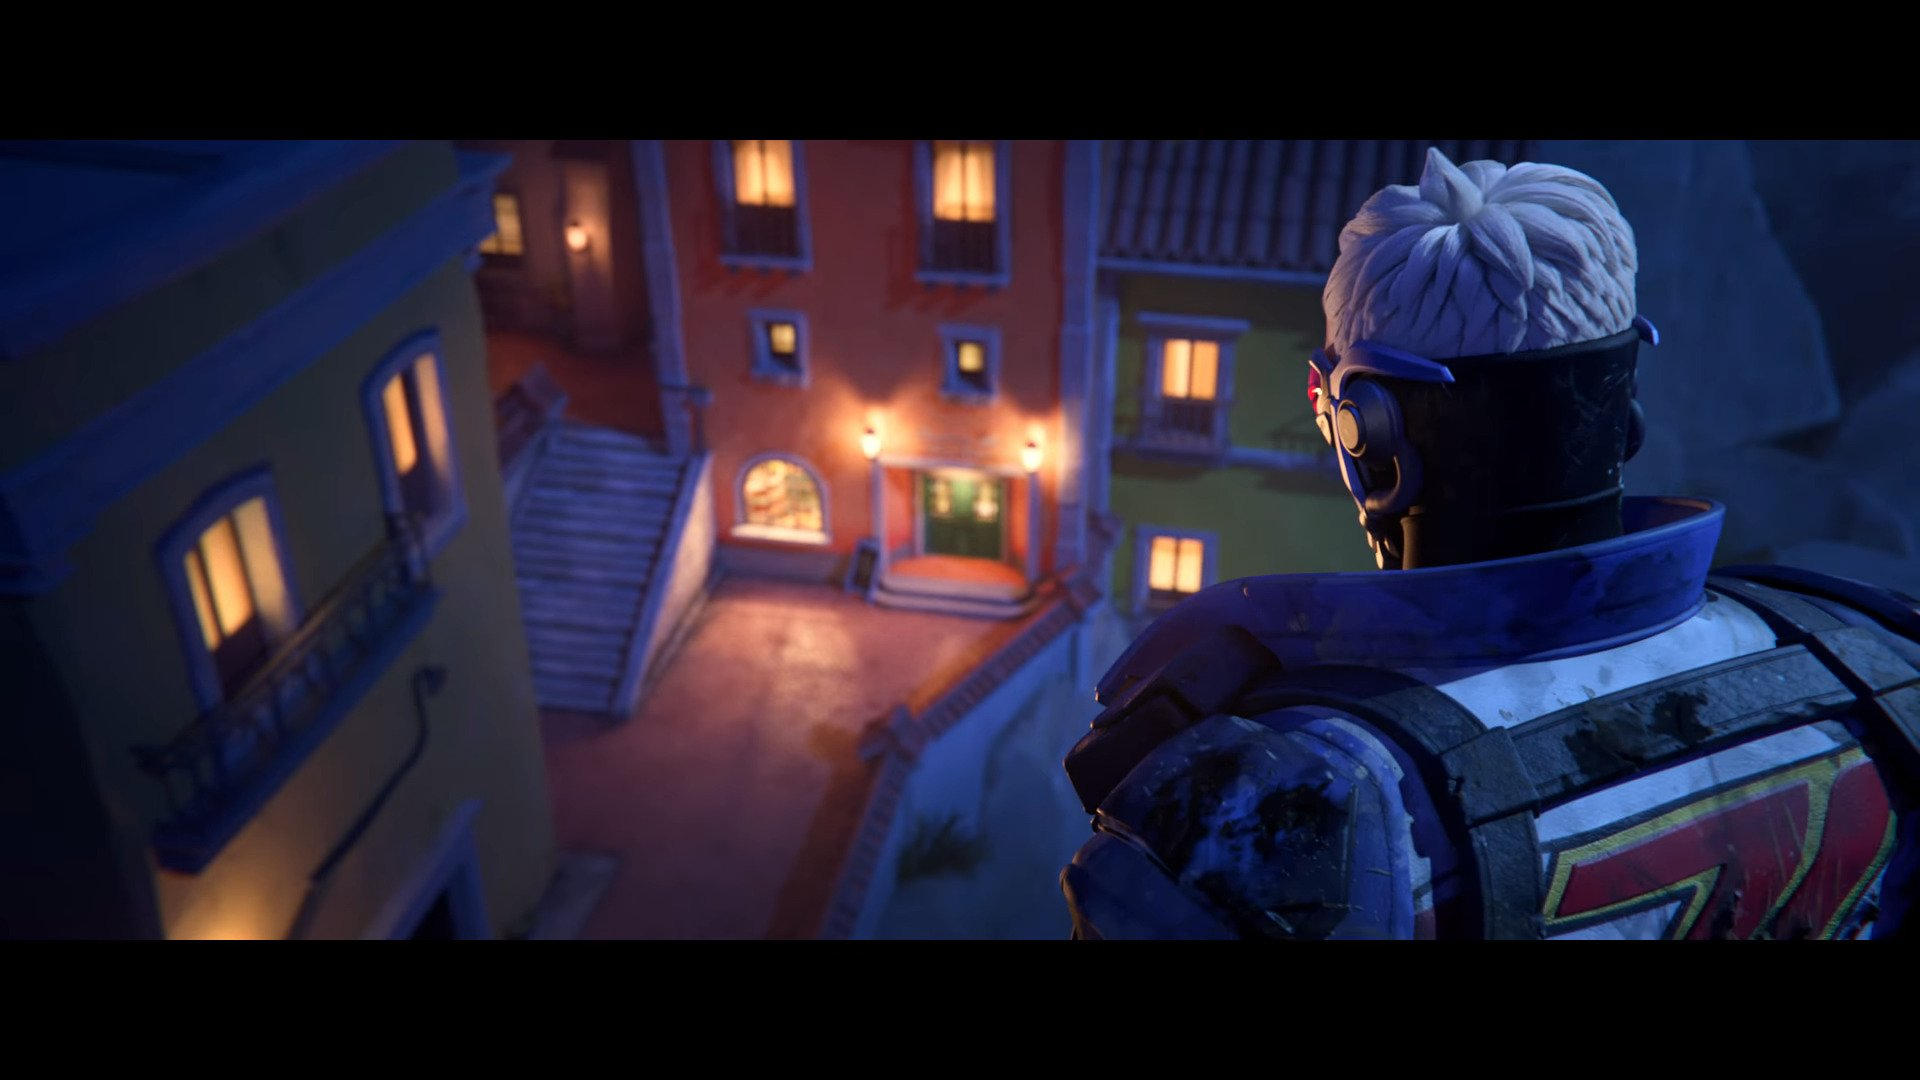 Overwatch's Soldier: 76 Receives Game-changing Buffs In The New Experimental Card